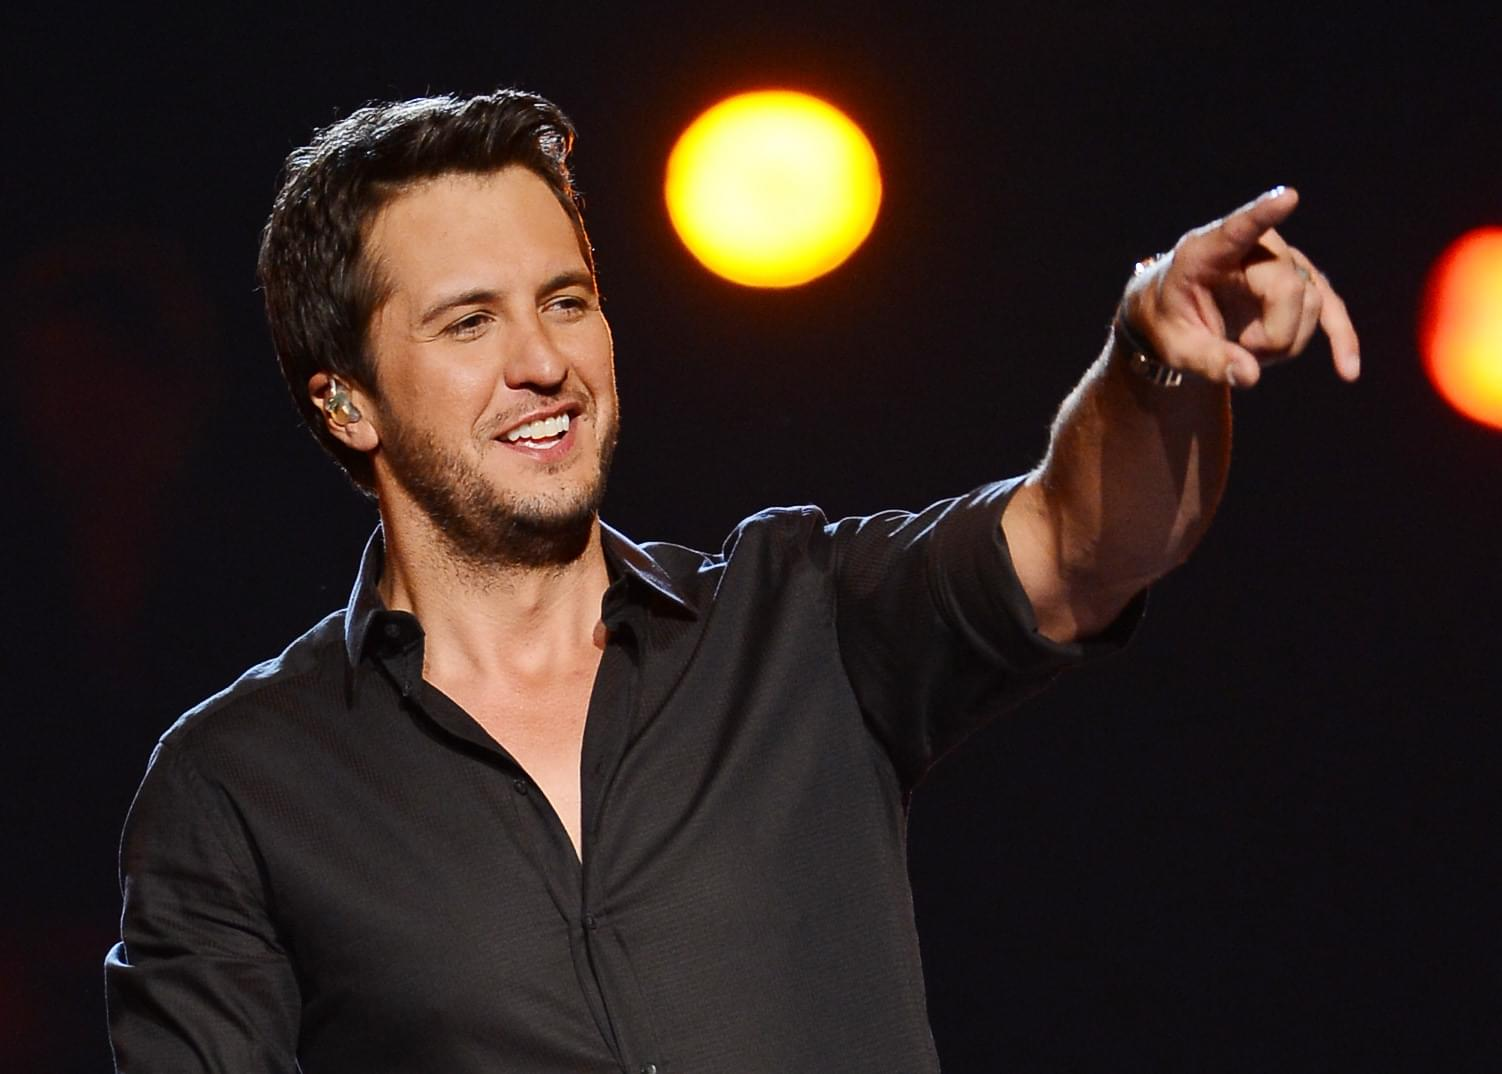 Luke Bryan Goes Swimming With Pigs And Dances Shirtless [WATCH]